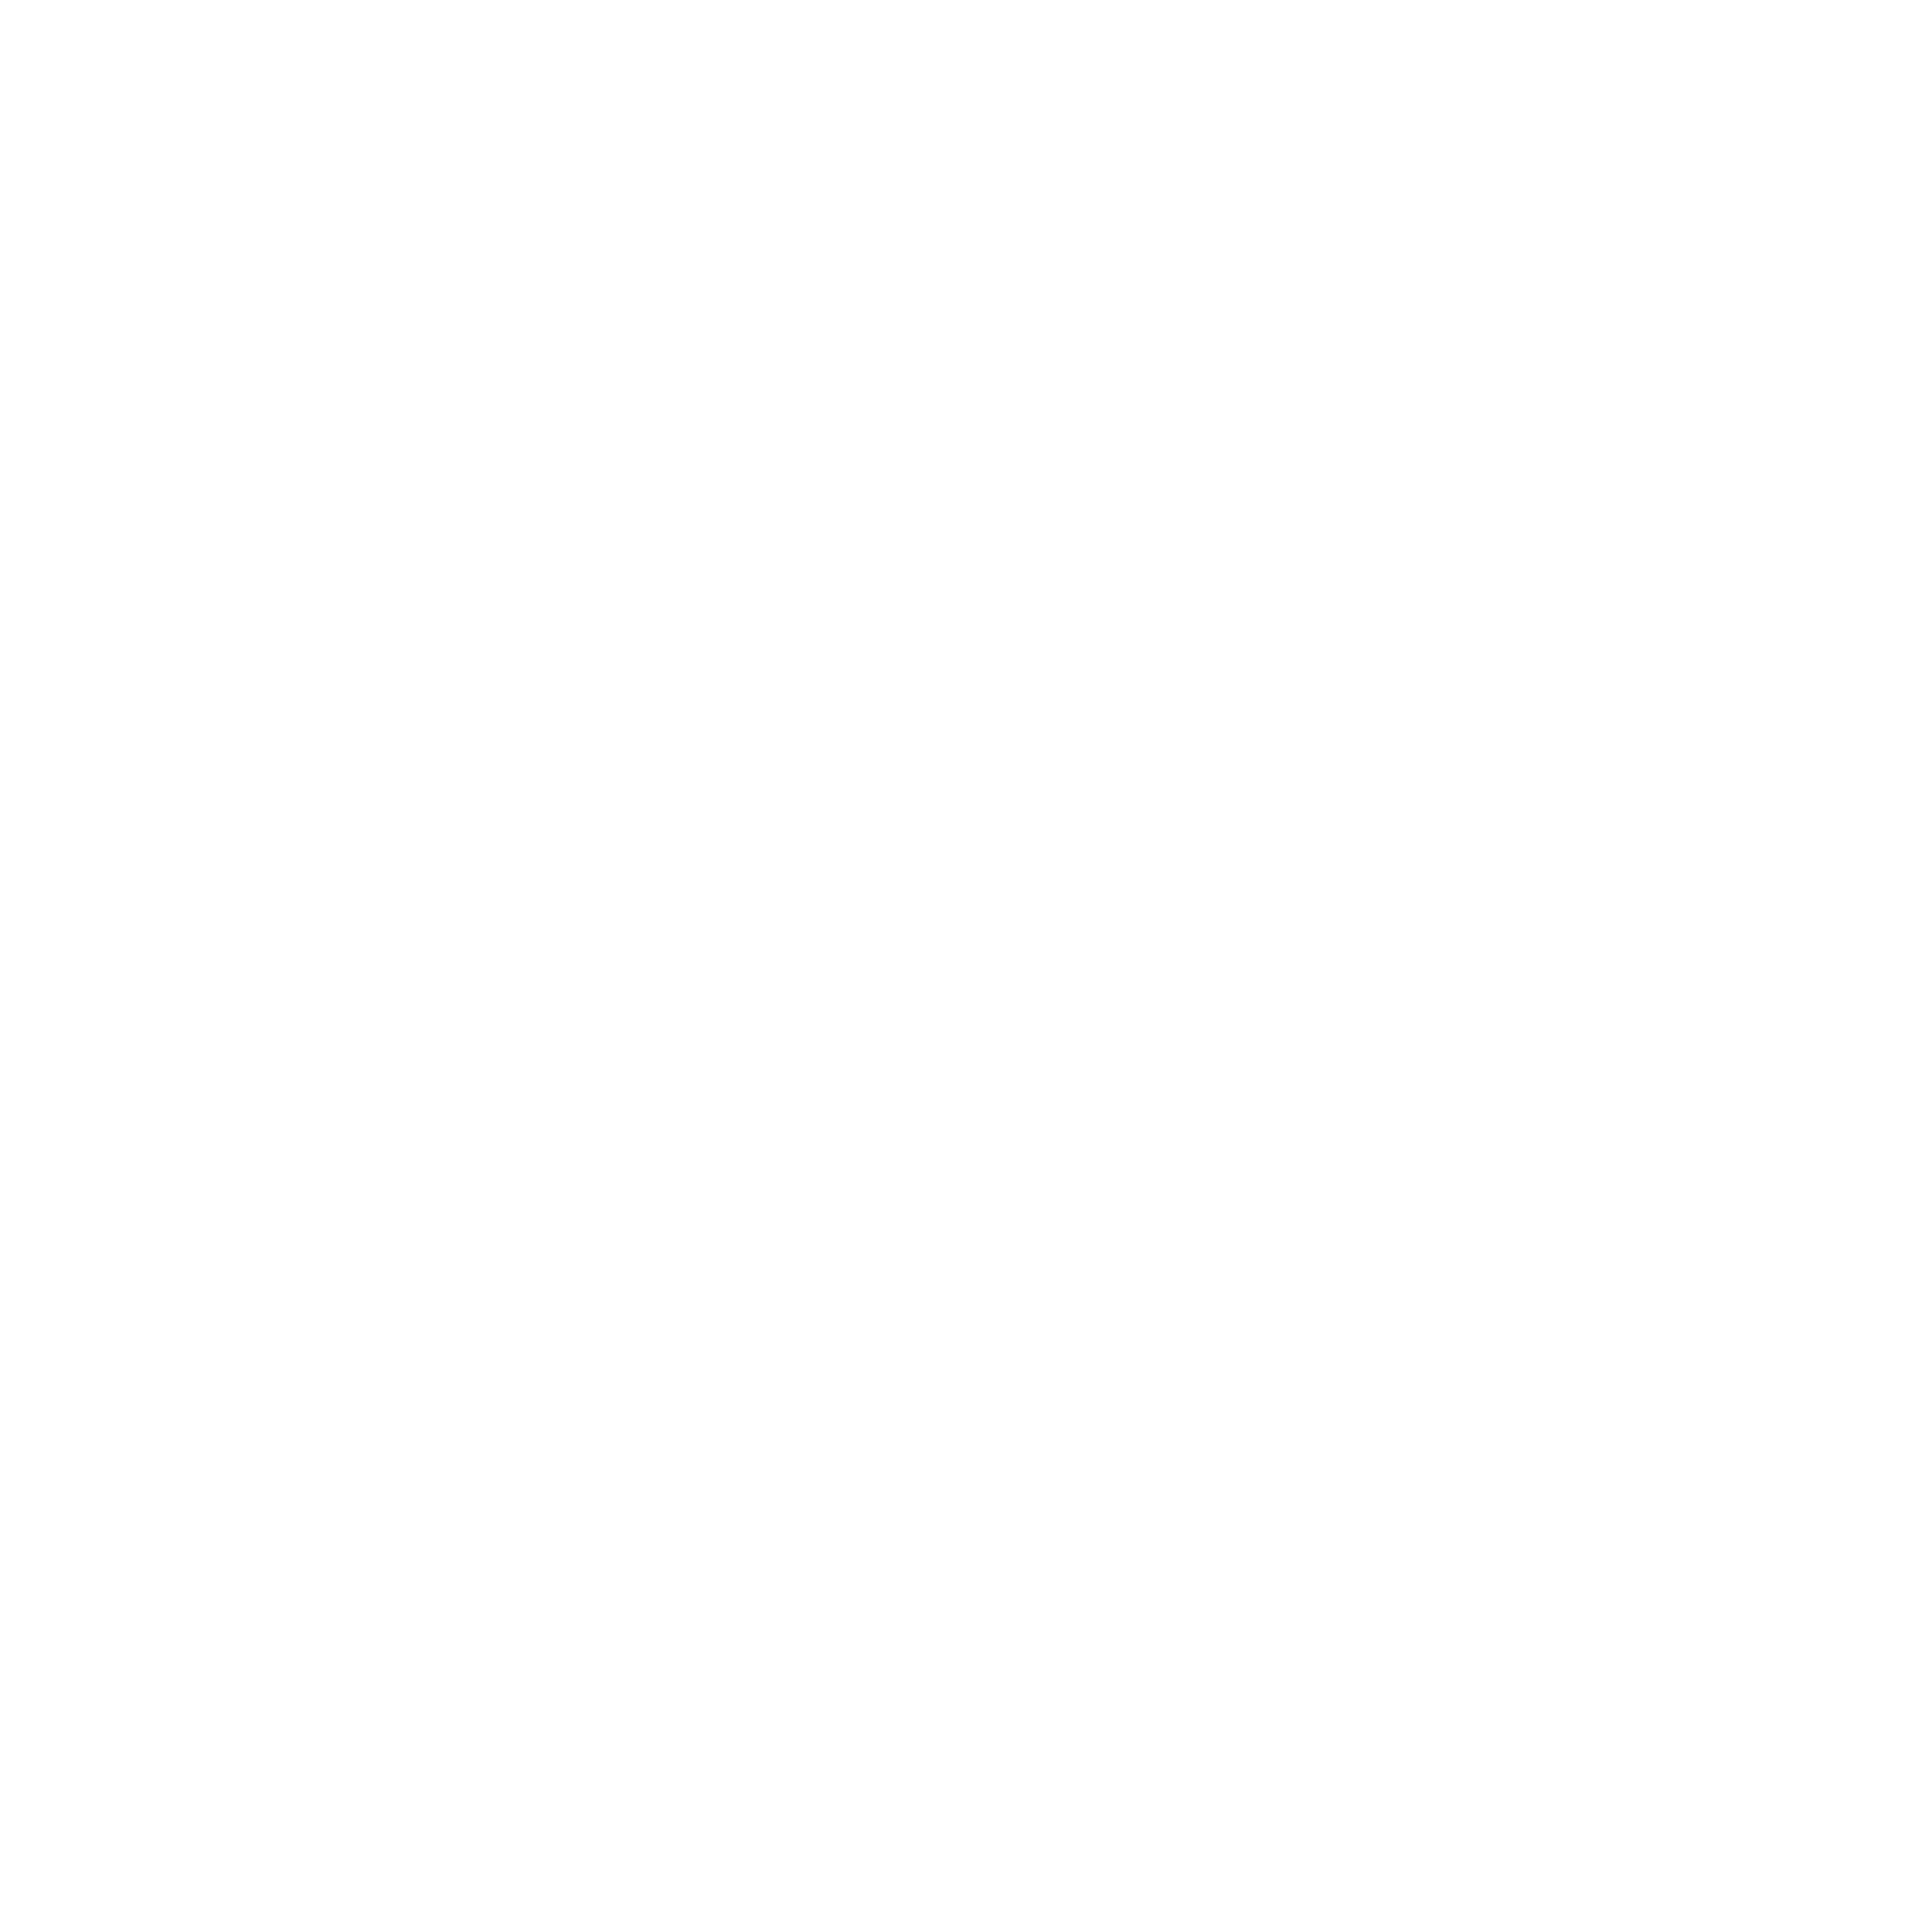 the City of Boulder